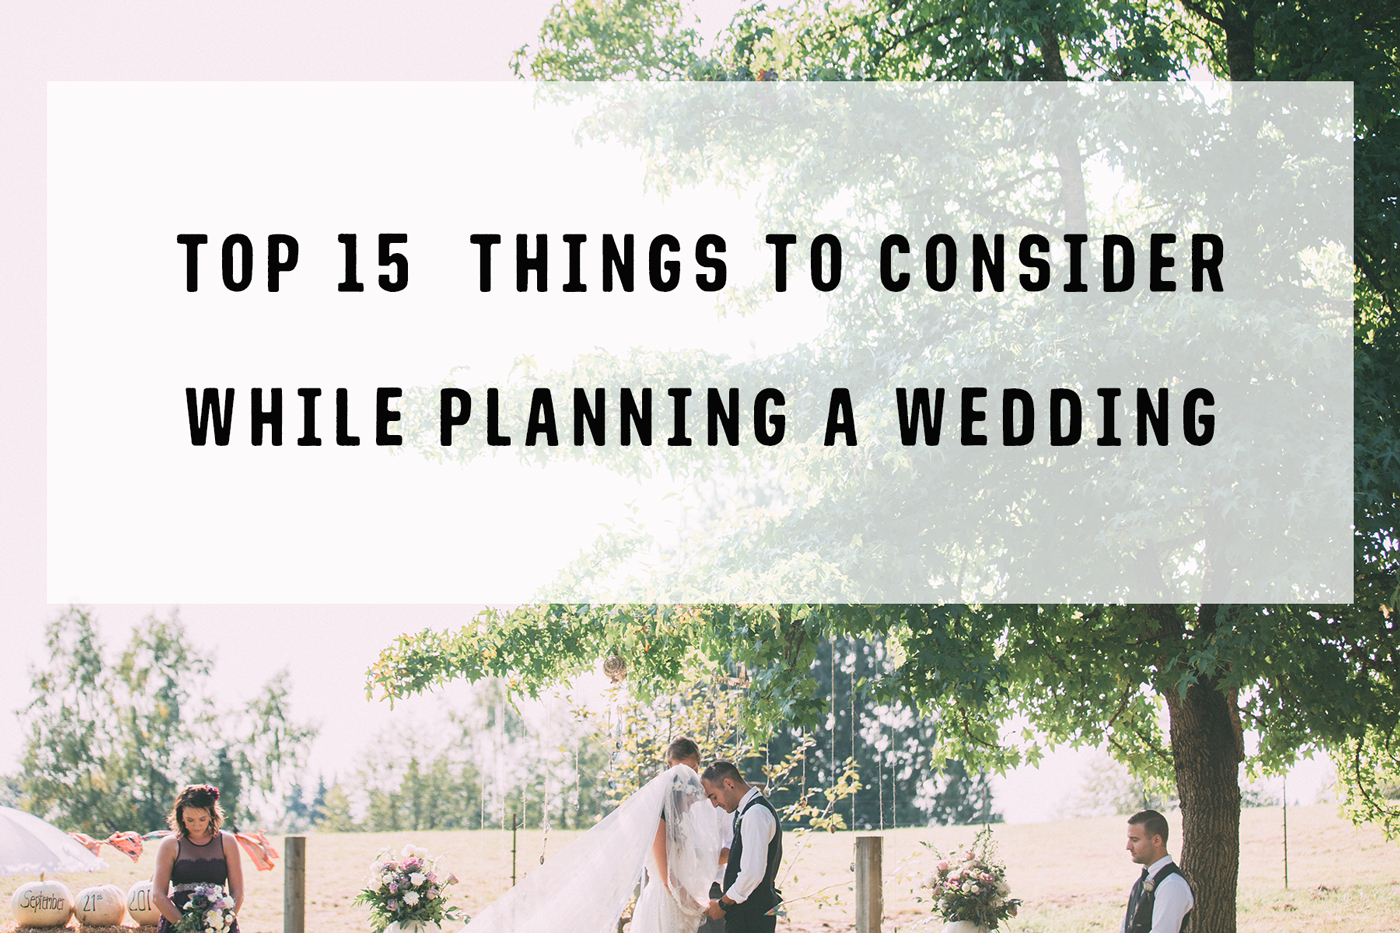 TOP 15 Things To Consider While Planning A Wedding » Katie